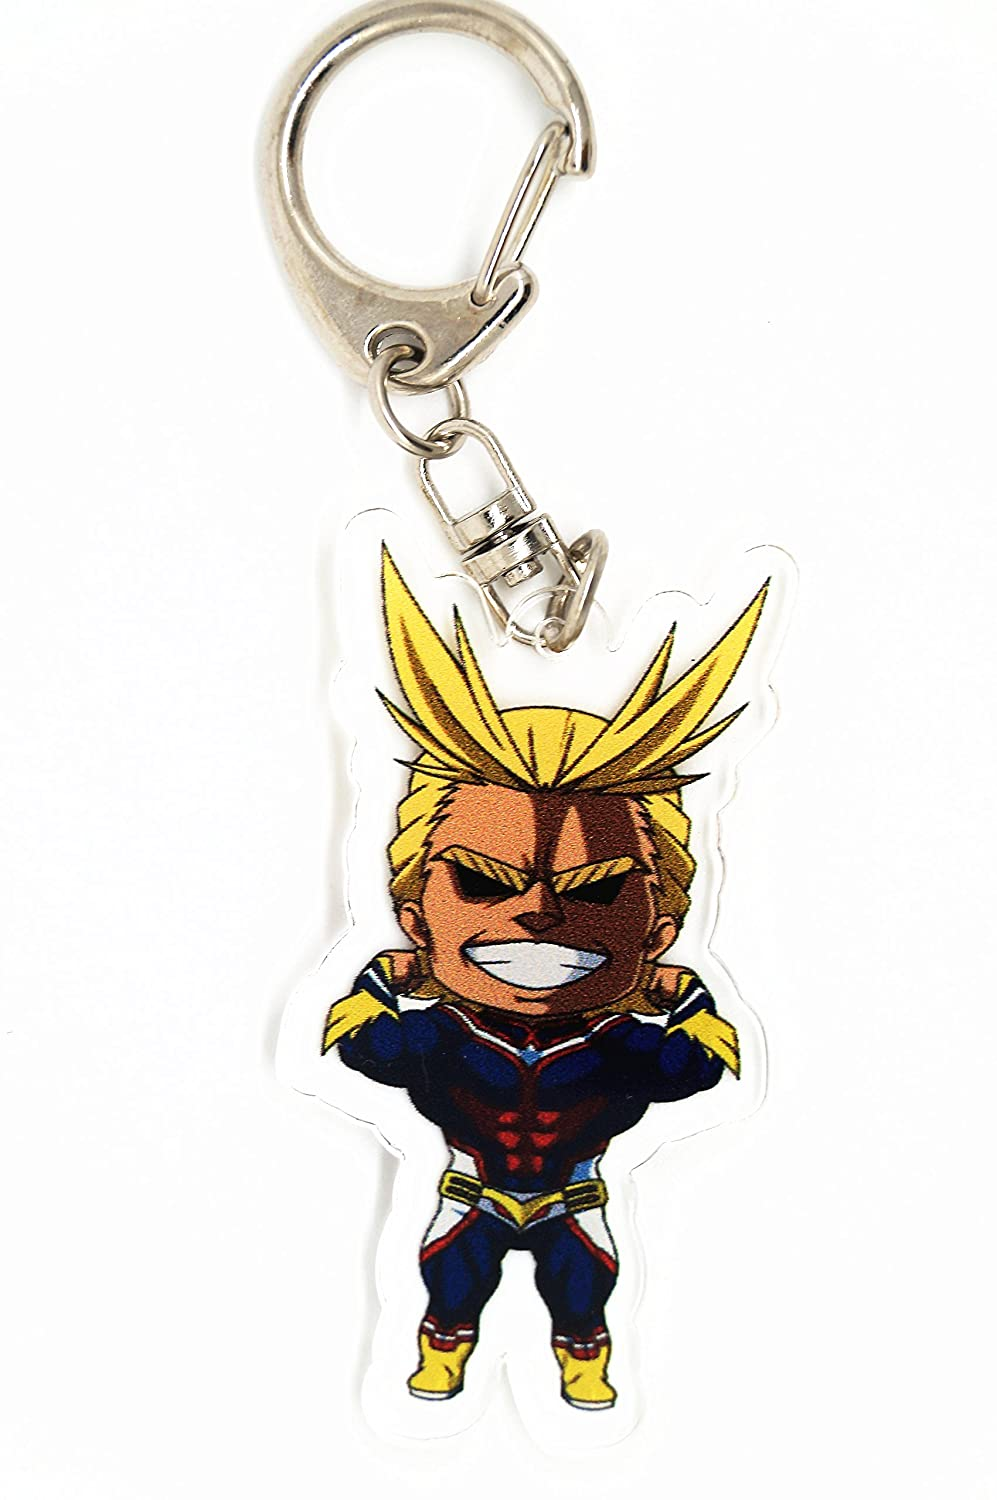 My Hero Academia Acrylic Key Chain, Strap, Izuku Midoriya, Izuku Midoriy, (All Might) GALIGEIGEI